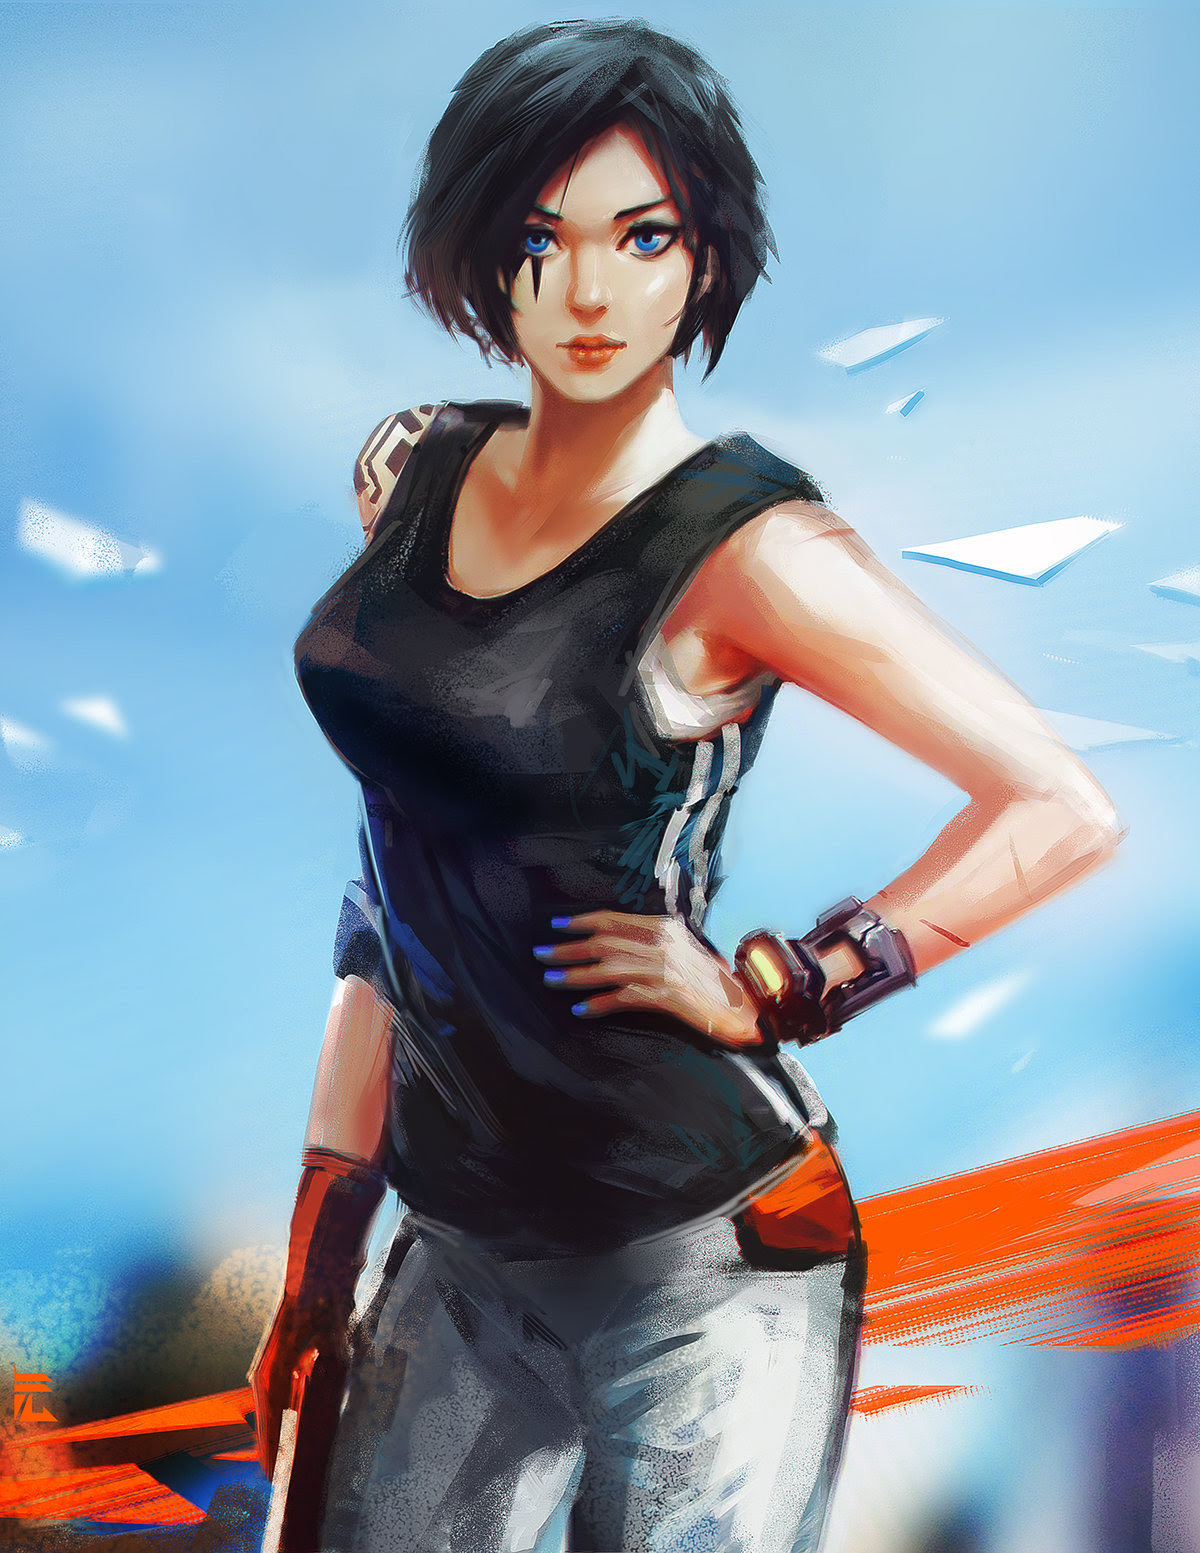 Mirror's Edge Faith Connors by Yuan Cui